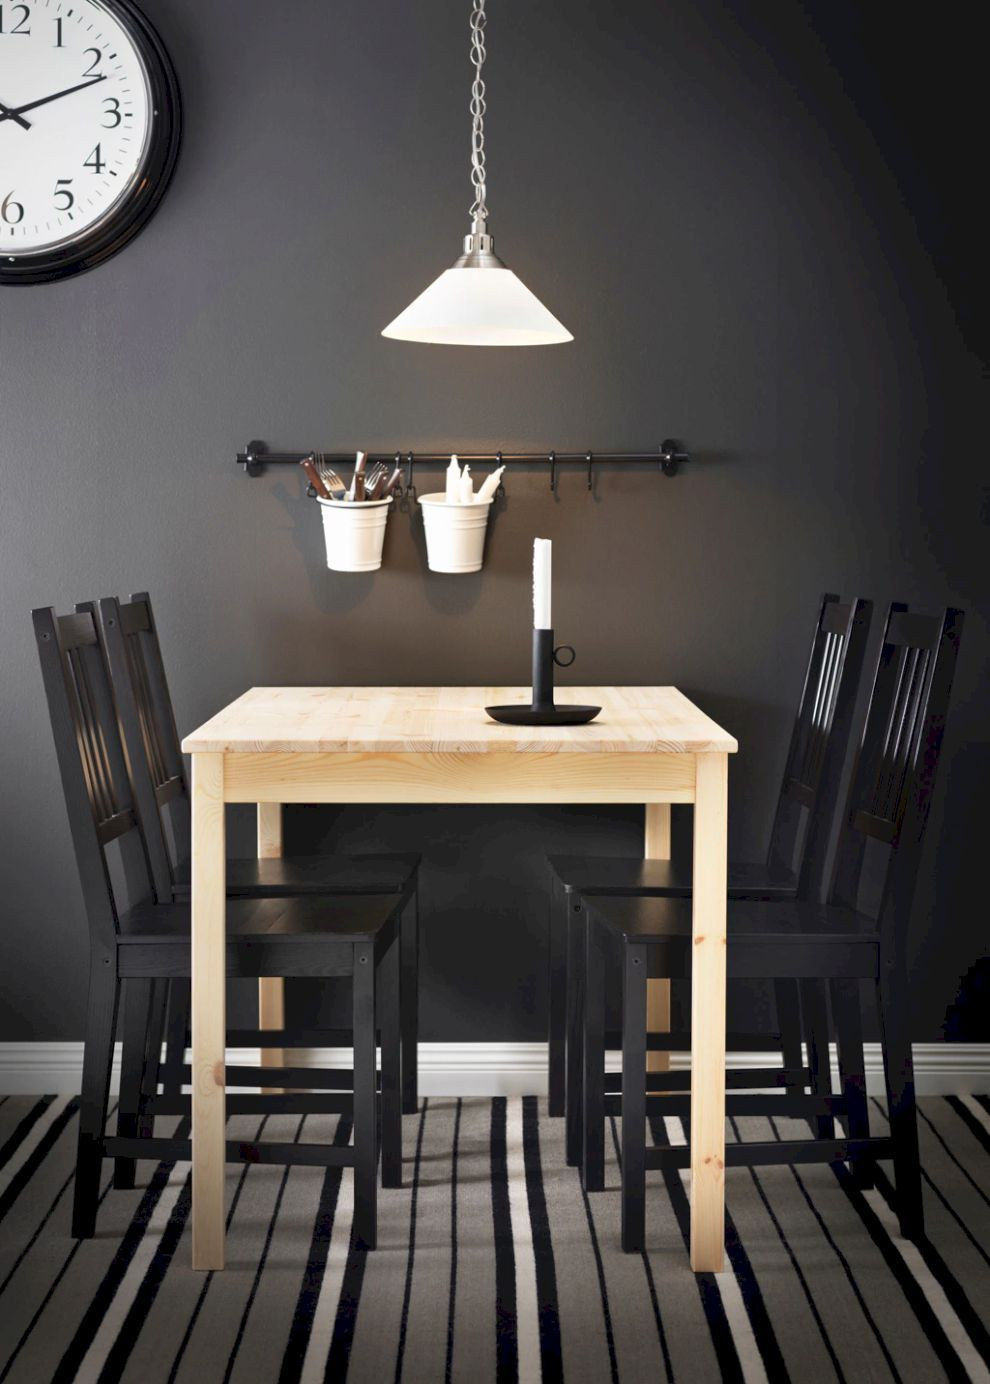 decorating dining room with ikea furniture ikea hack